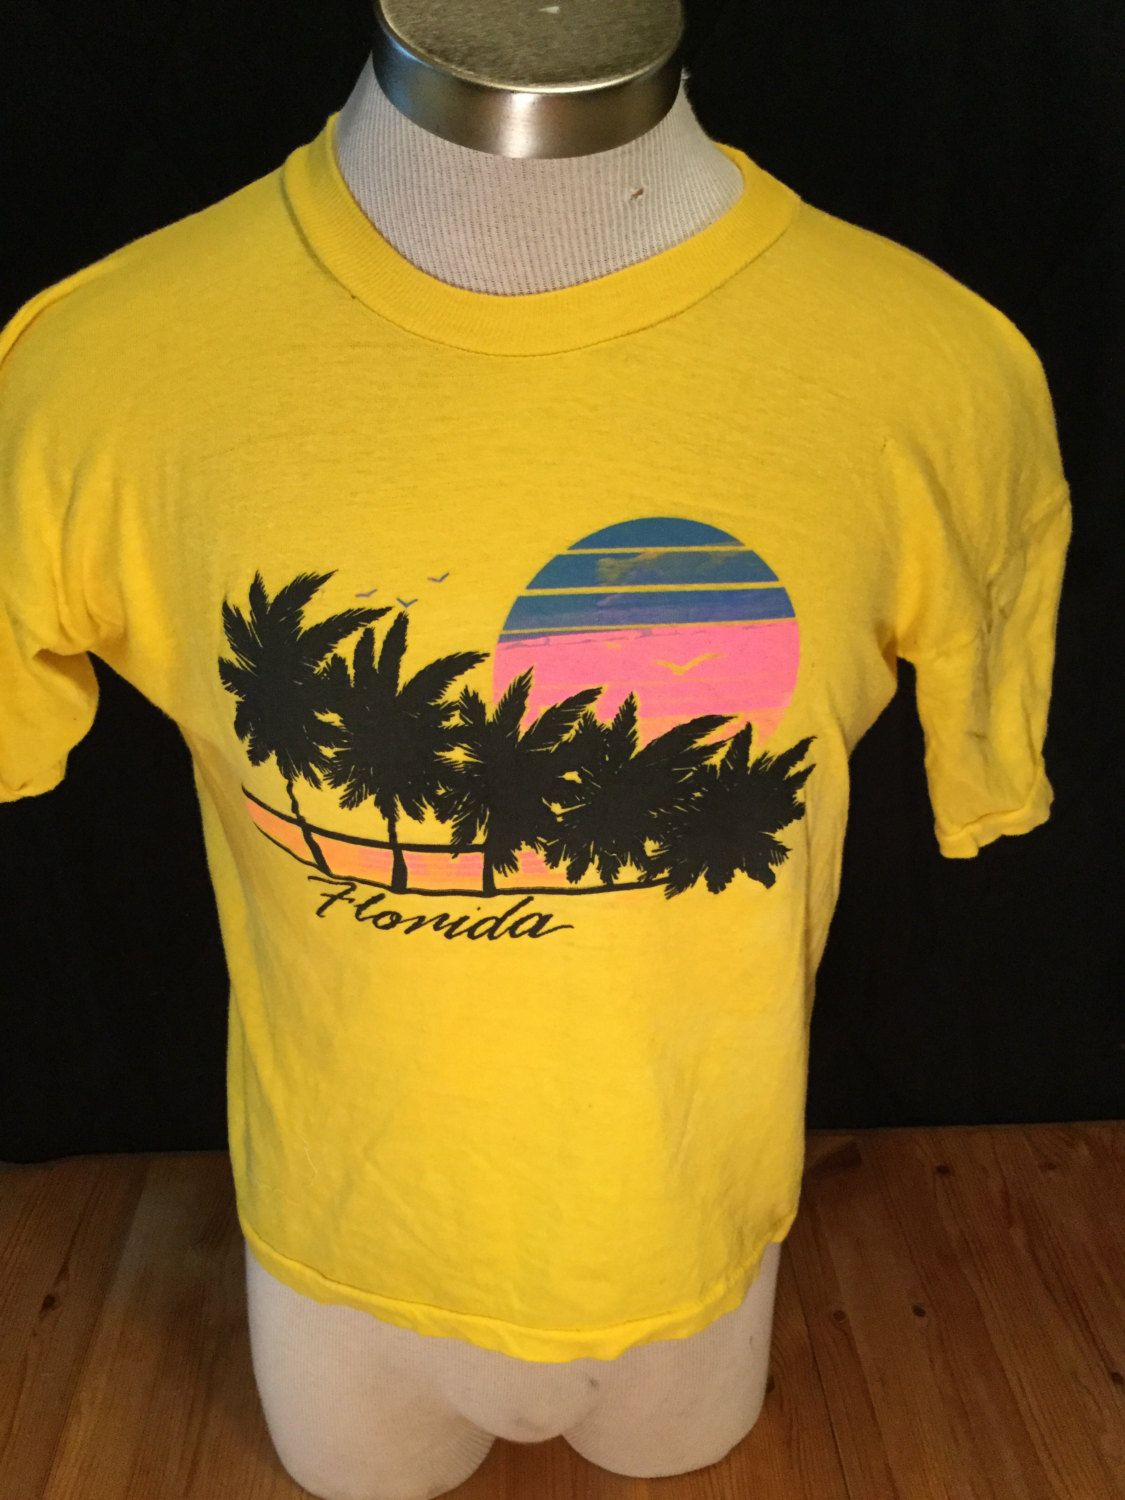 Behind the chair shirts - Vintage 1980 S Tourist T Shirt Surf Beach 50 50 Size Large Florida By 413productions